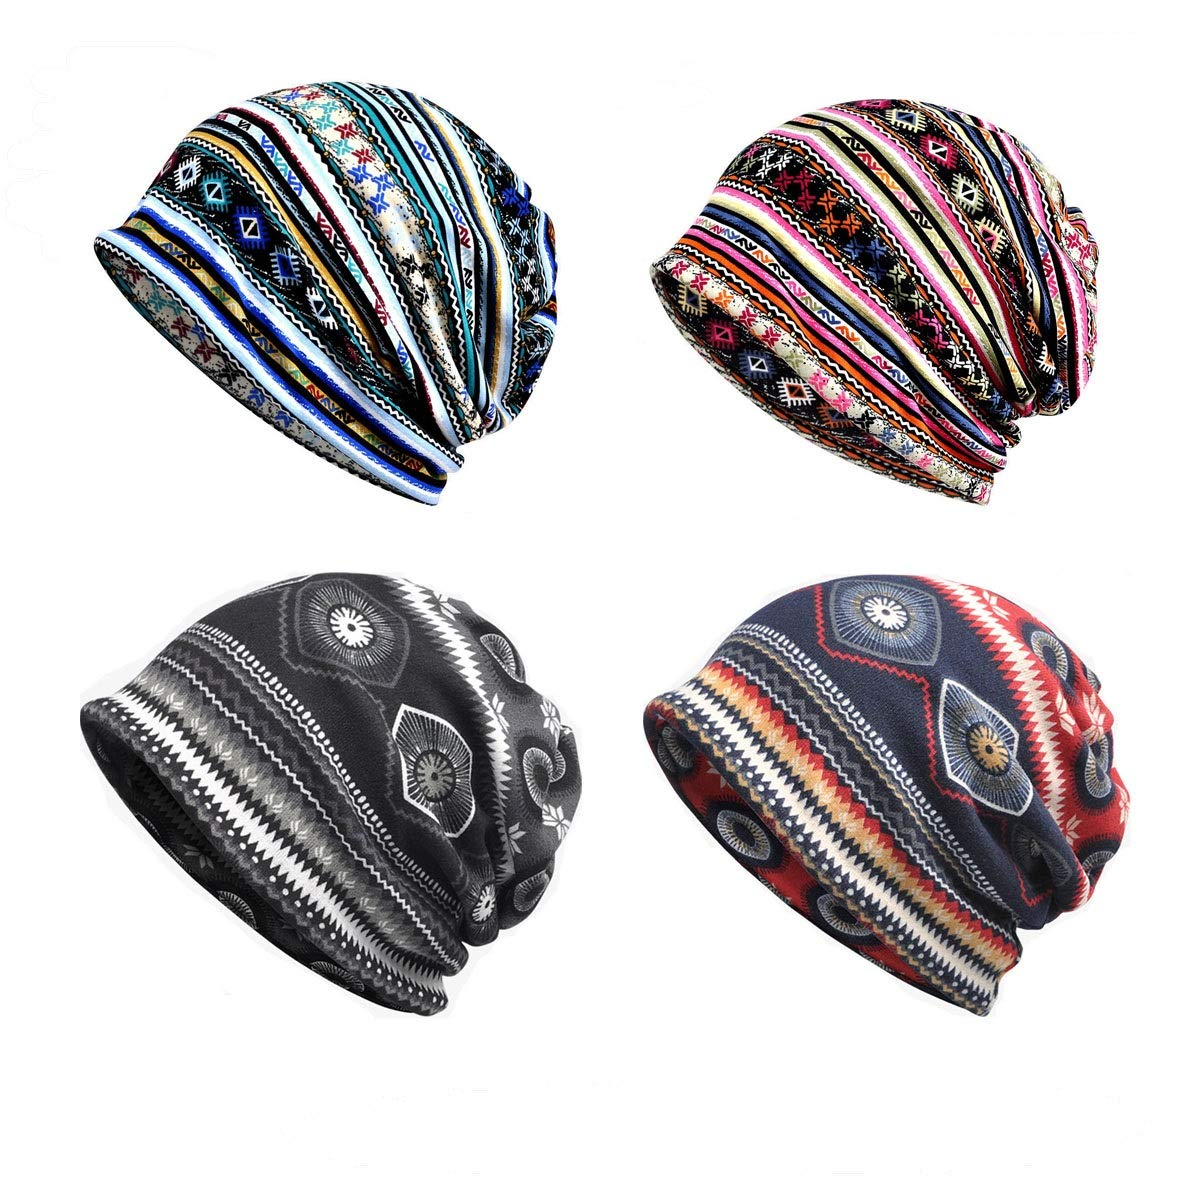 Beanies Chemo Caps Cancer Headwear Skull Cap Knitted hat Scarf for Womens Mens (4pack)